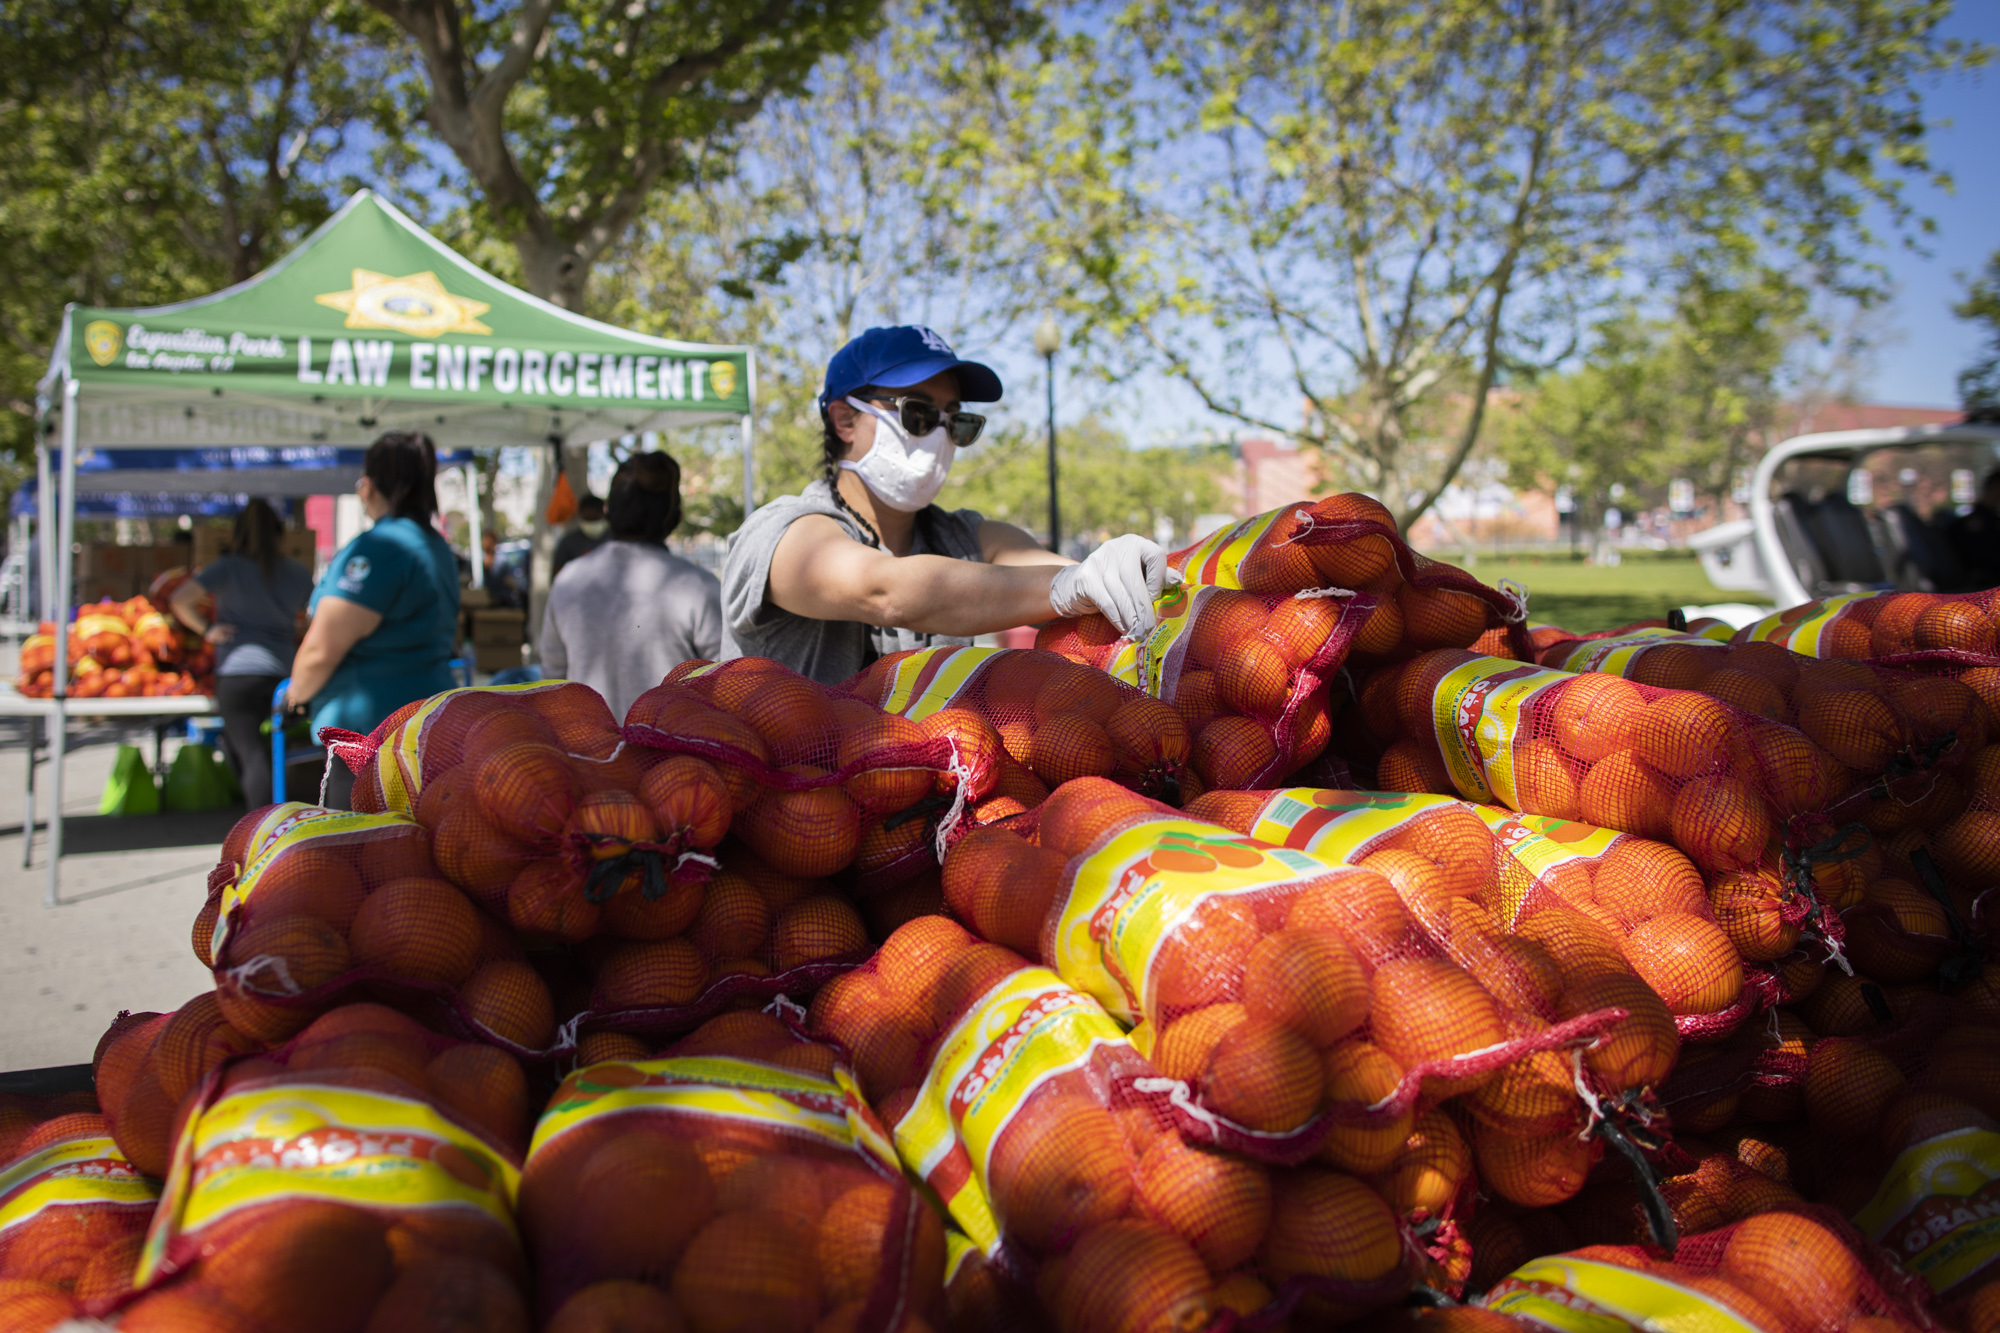 Elizabeth Bowman, Director of Farmers Market Operations for Sustainable Economic Enterprises of Los Angeles (SEE-LA) helps with the Farm Box Program.